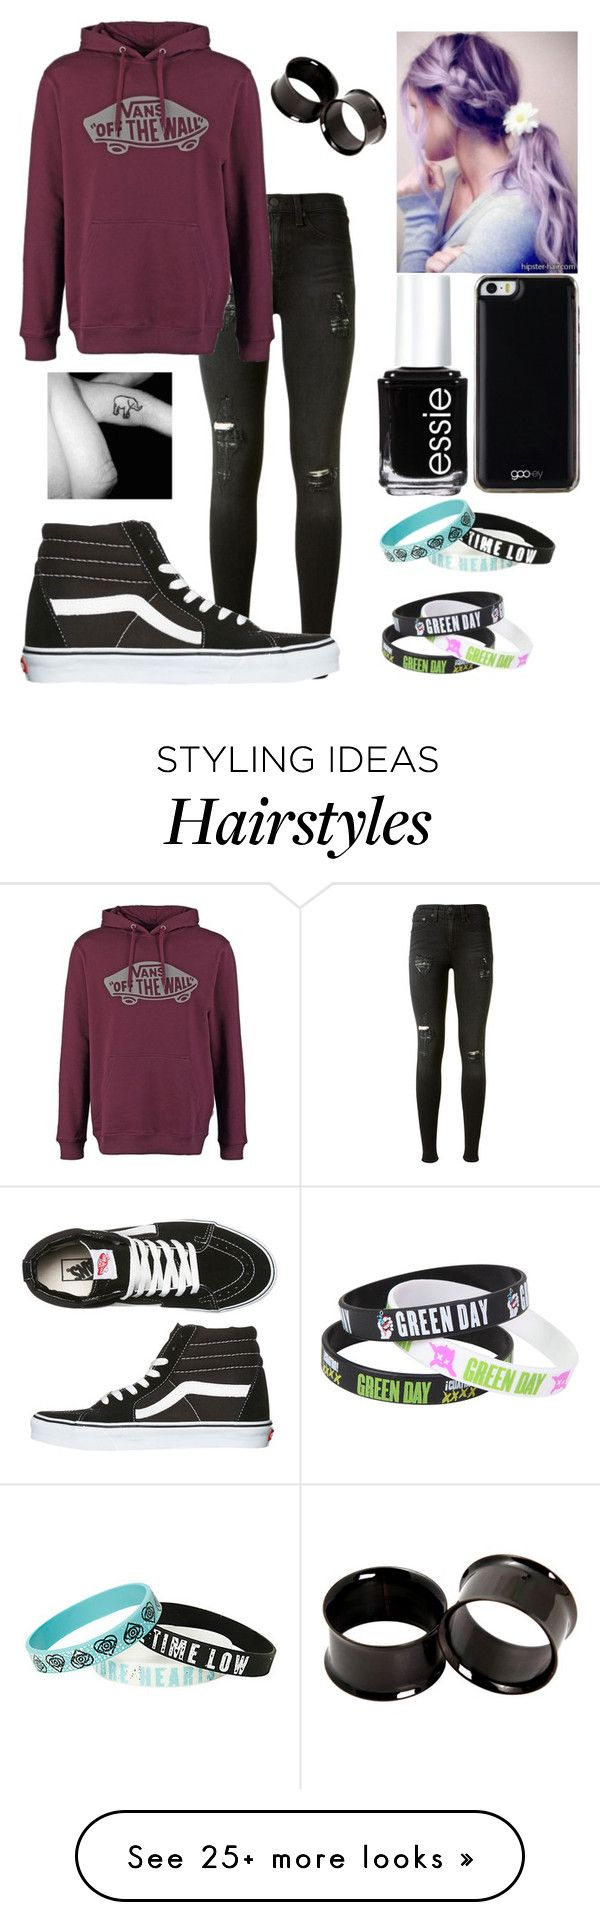 """Untitled #154"" by lexielou211 on Polyvore featuring rag & bone, Vans, Gooey and Essie"